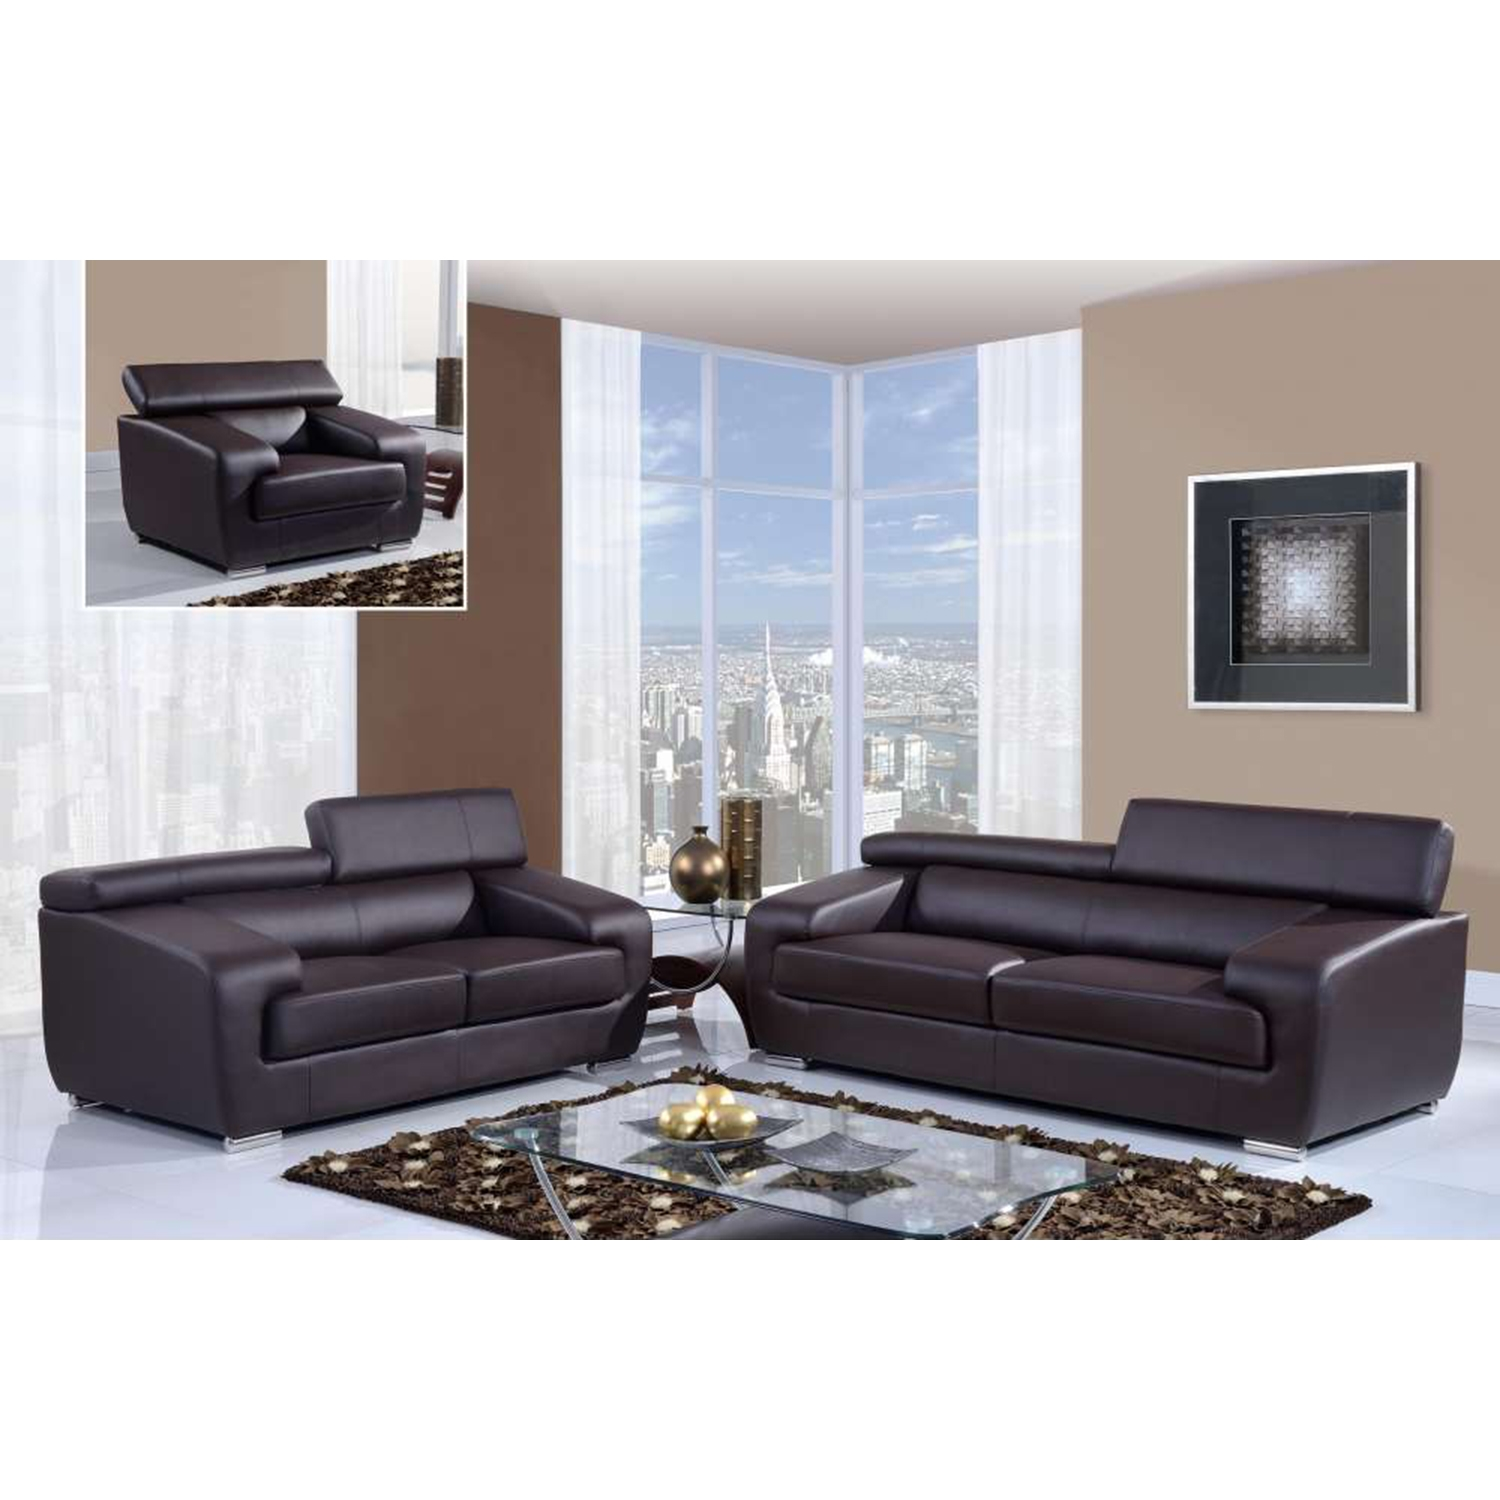 Caitlyn Sofa Set in Natalie Chocolate - GLO-U7090-R6U6-SET